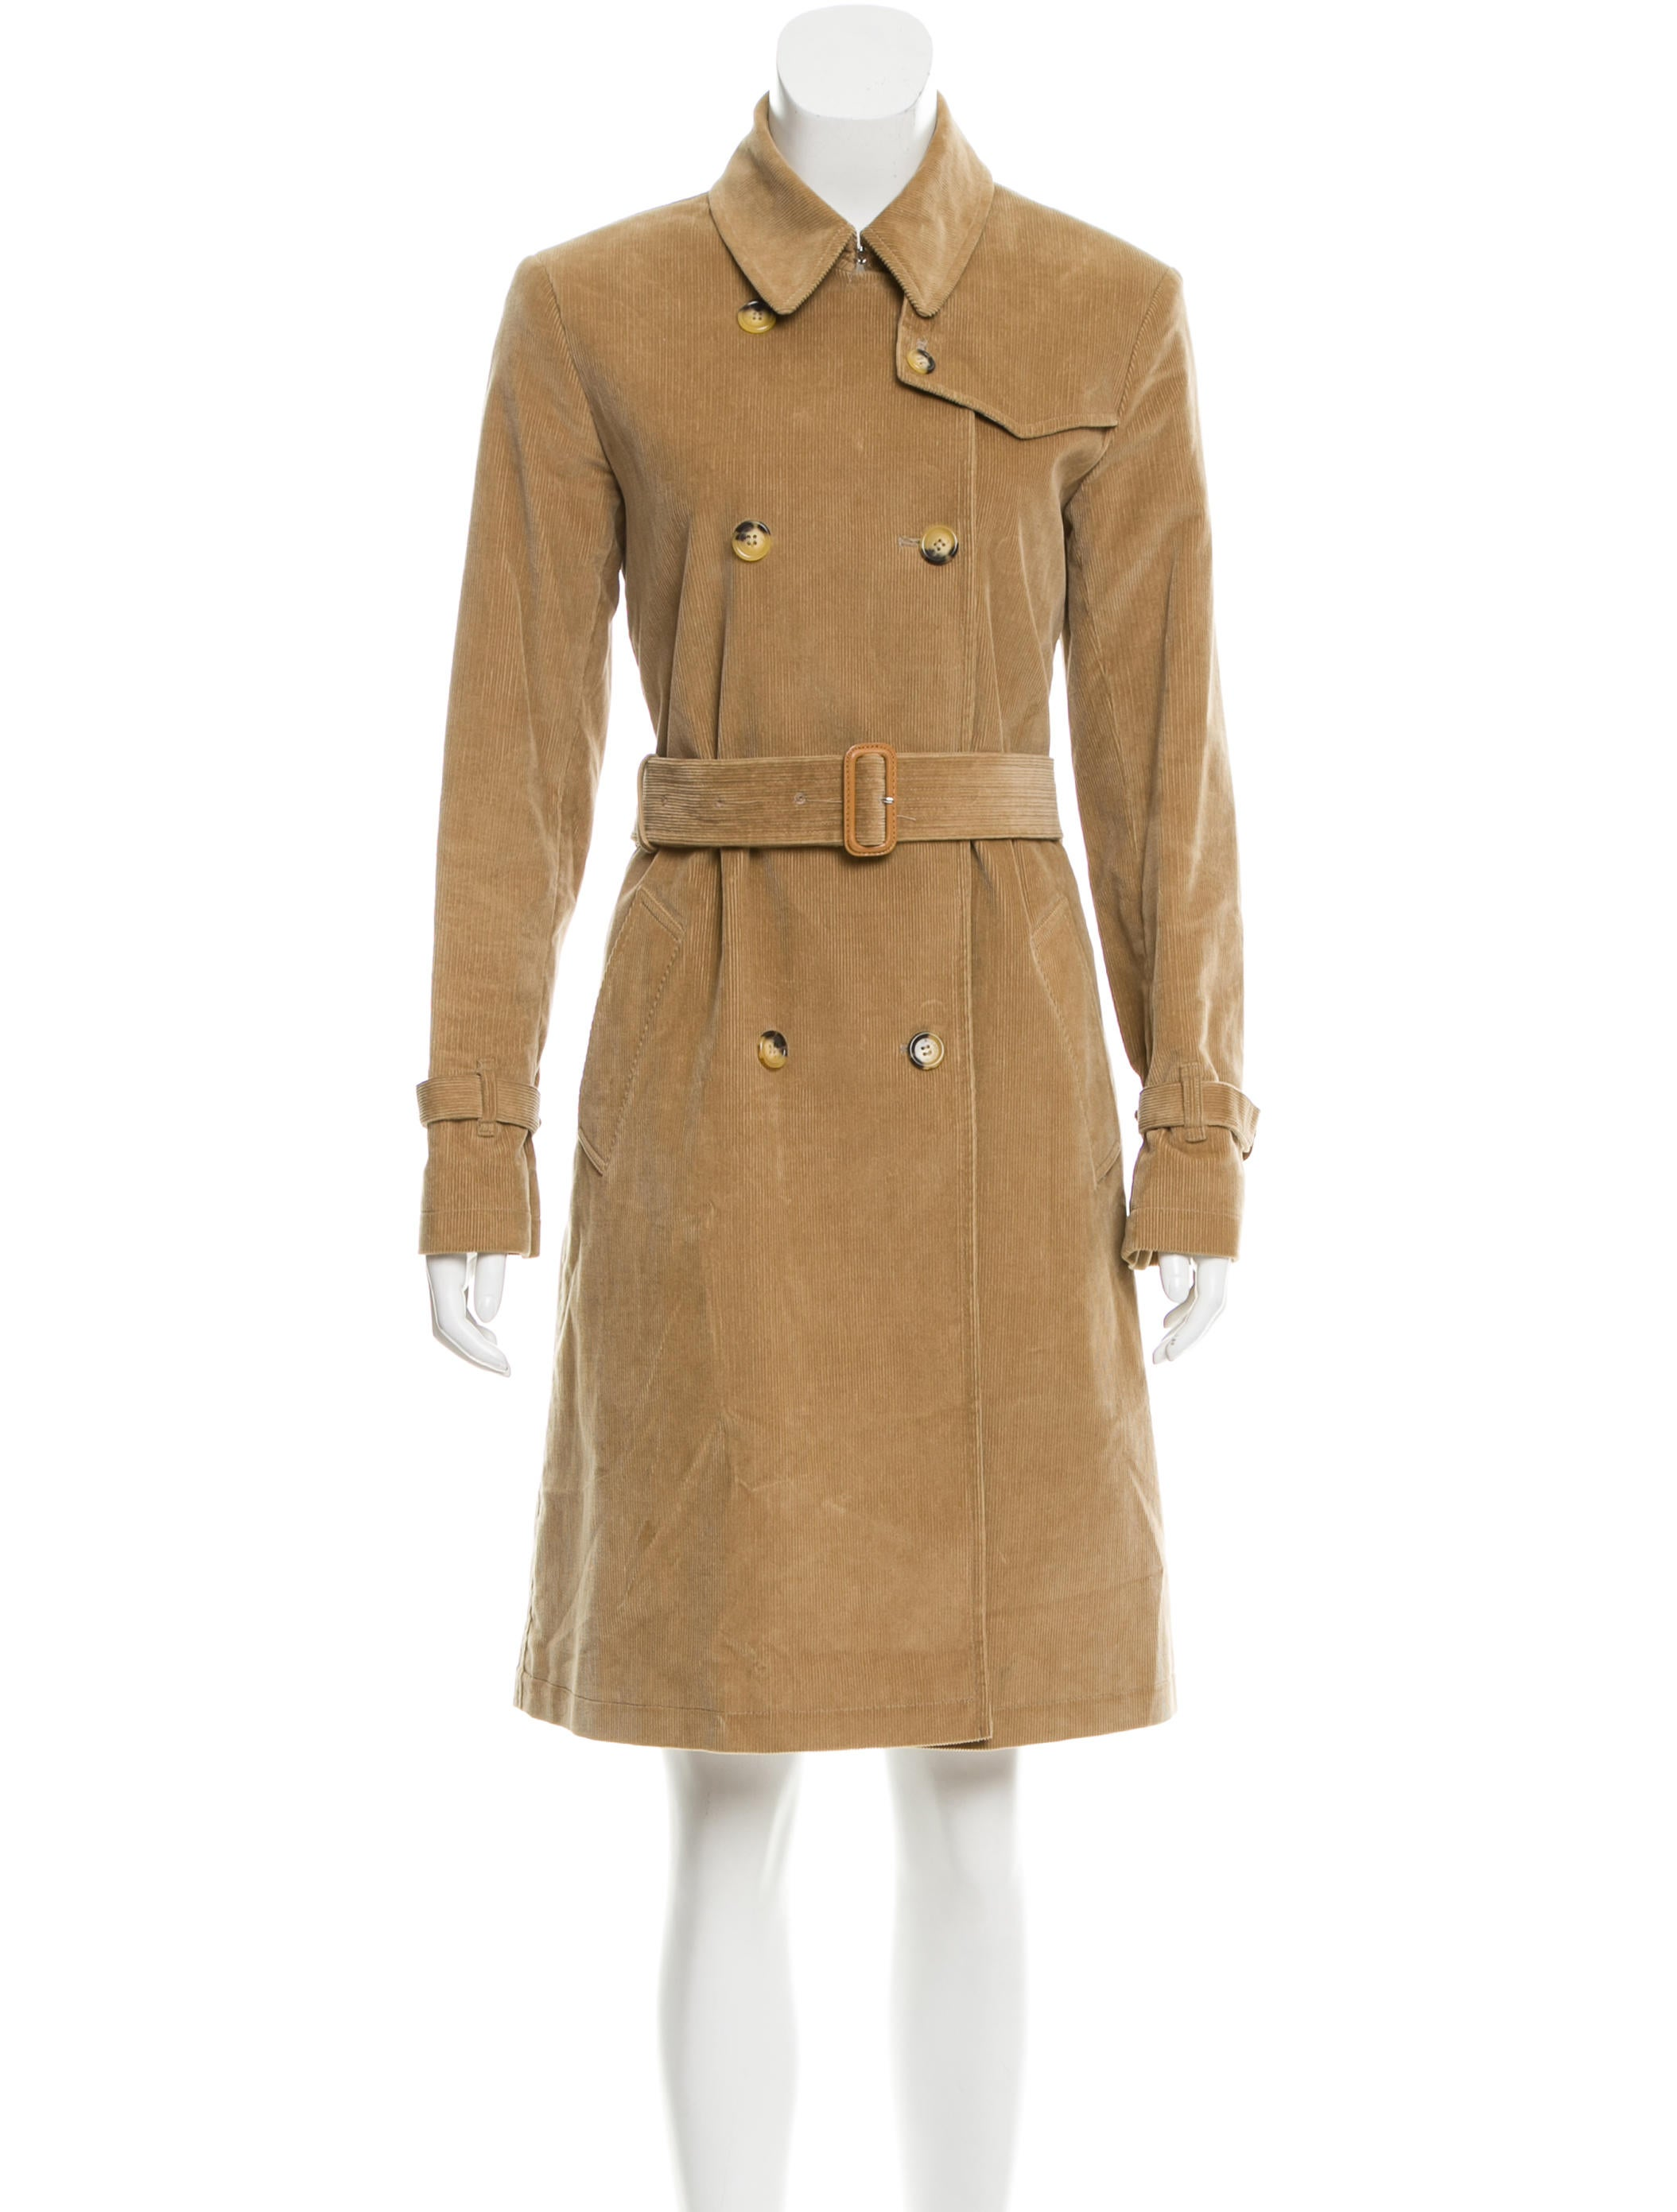 Burberry Home Decor Burberry Corduroy Trench Coat Clothing Bur68320 The